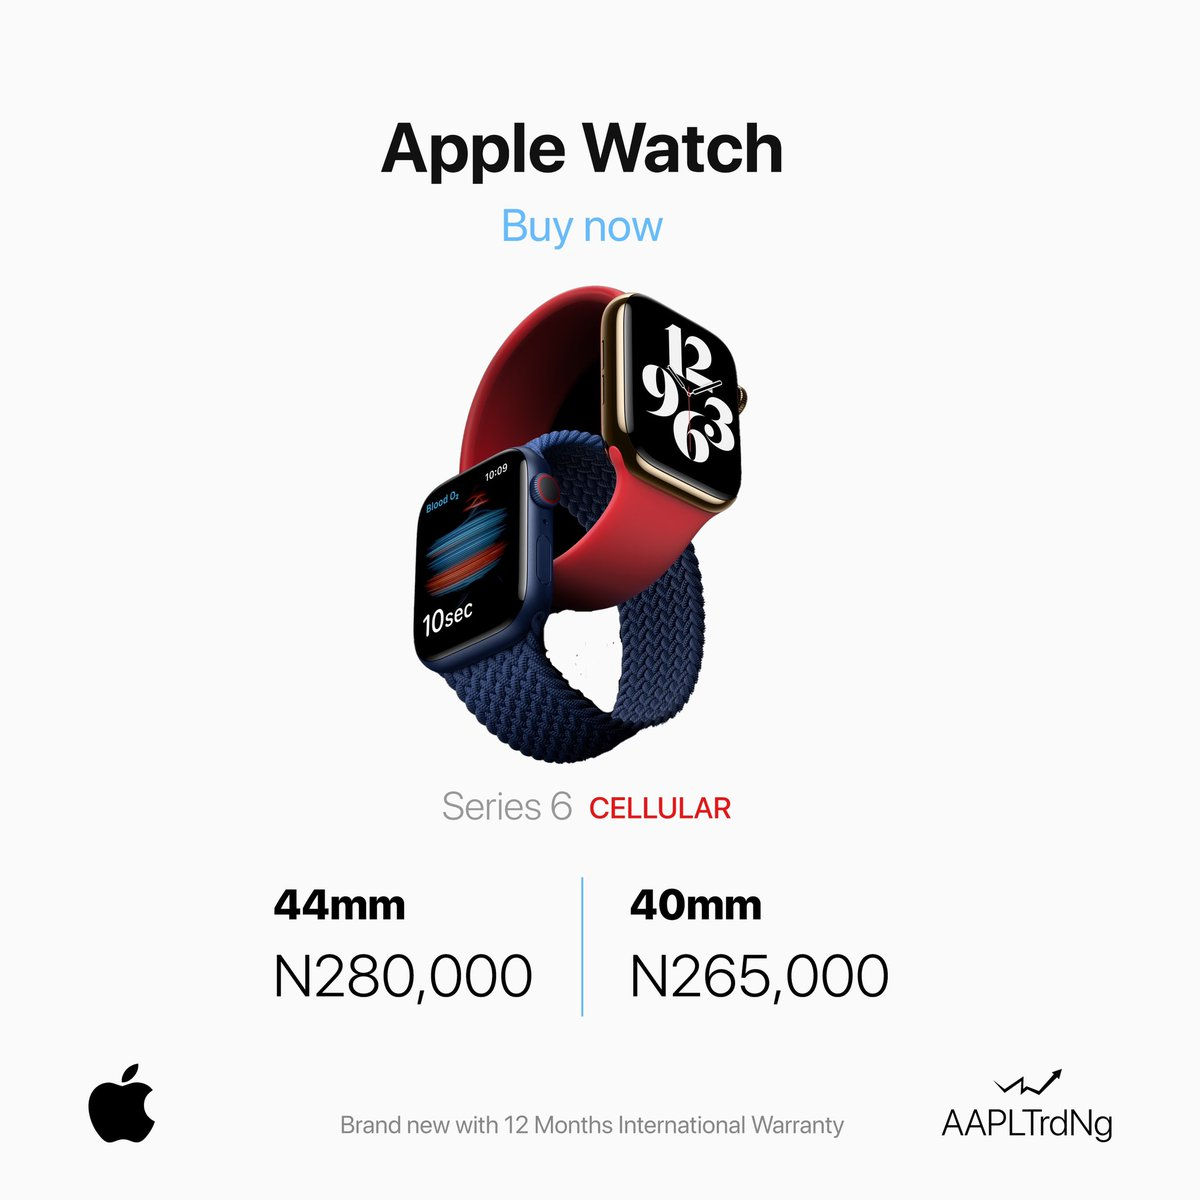 @apple Watch Series 6 CELLULAR IN-STORE** @aapltrdng _ 40mm N265,000 44mm N280,000 _ Product Informtion _ Always-On Retina display with Force Touch _ GPS and GPS + Cellular Models _ 40mm 04 44mm case; Over 30 Percent Larger display _ https://t.co/dK4PAm2tEC